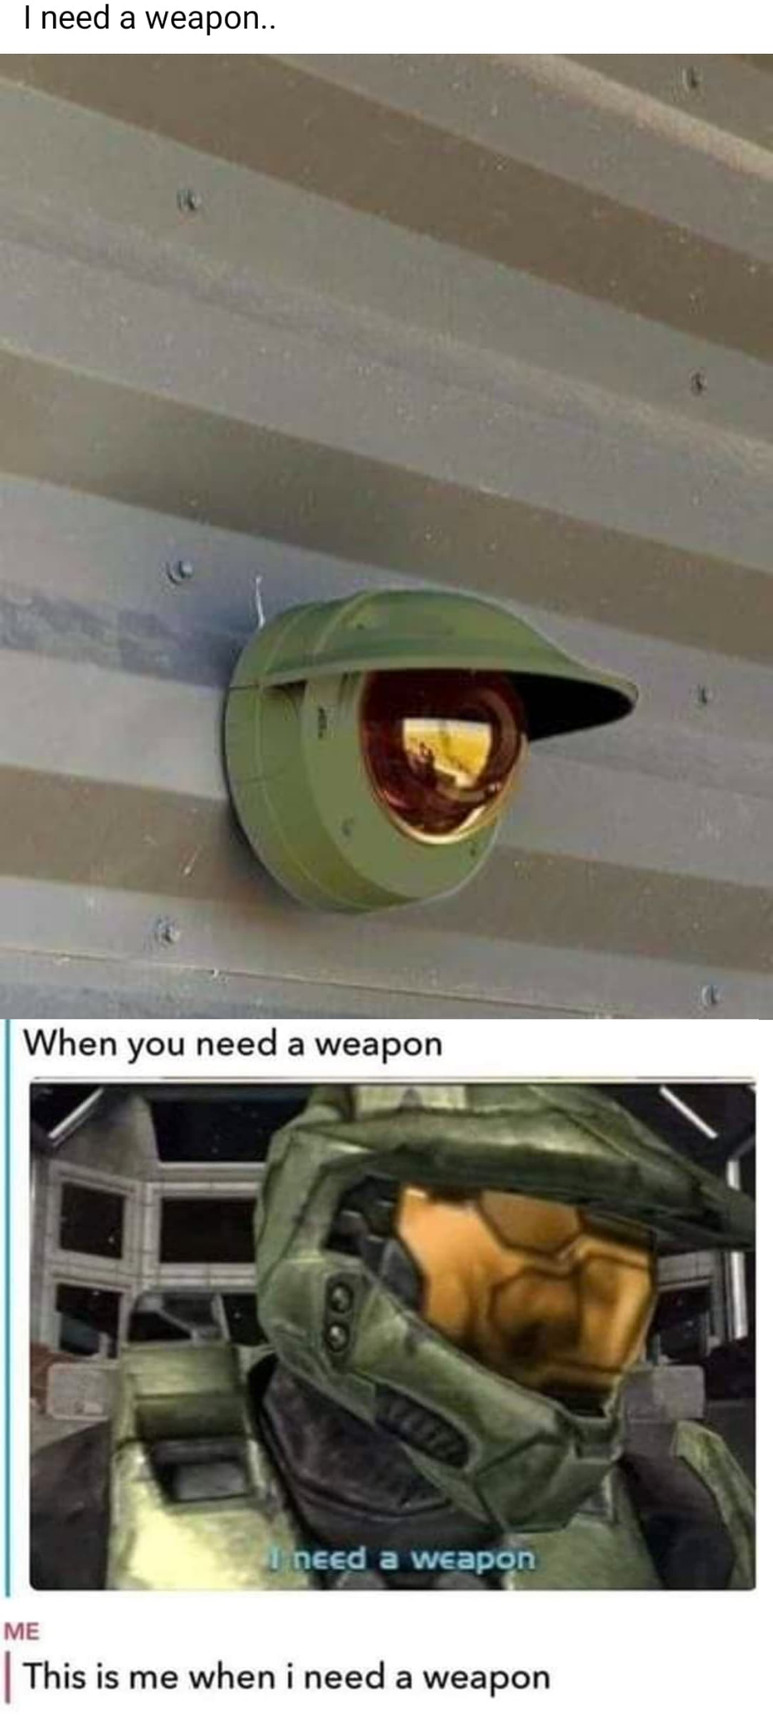 Gotta have a weapon - meme